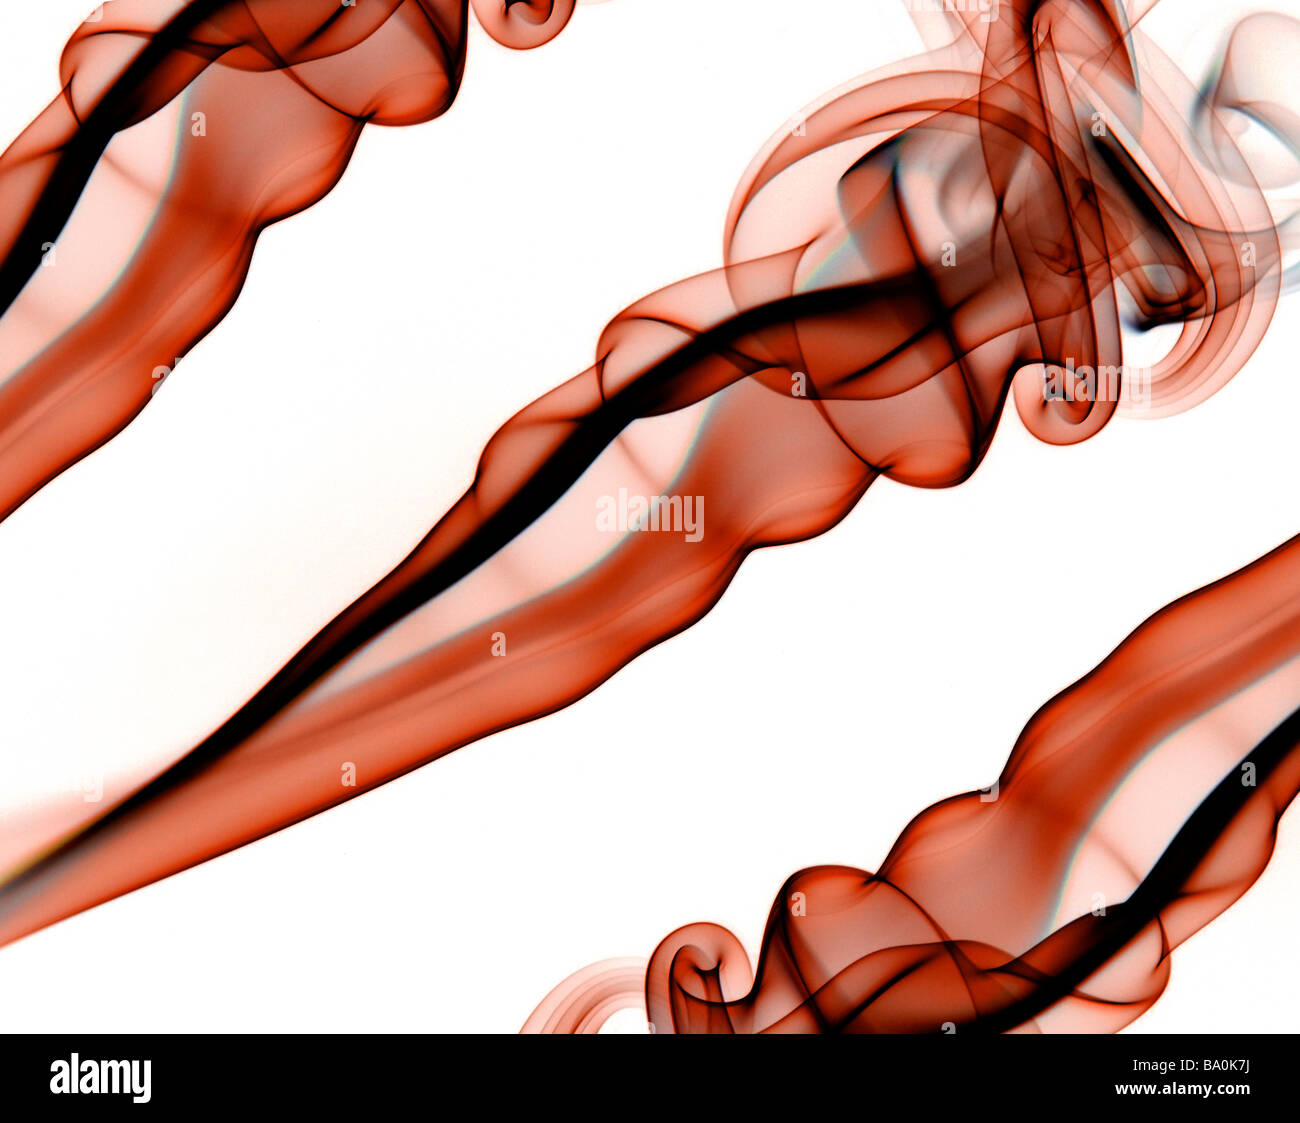 Delicate colourful smoke abstract - Stock Image